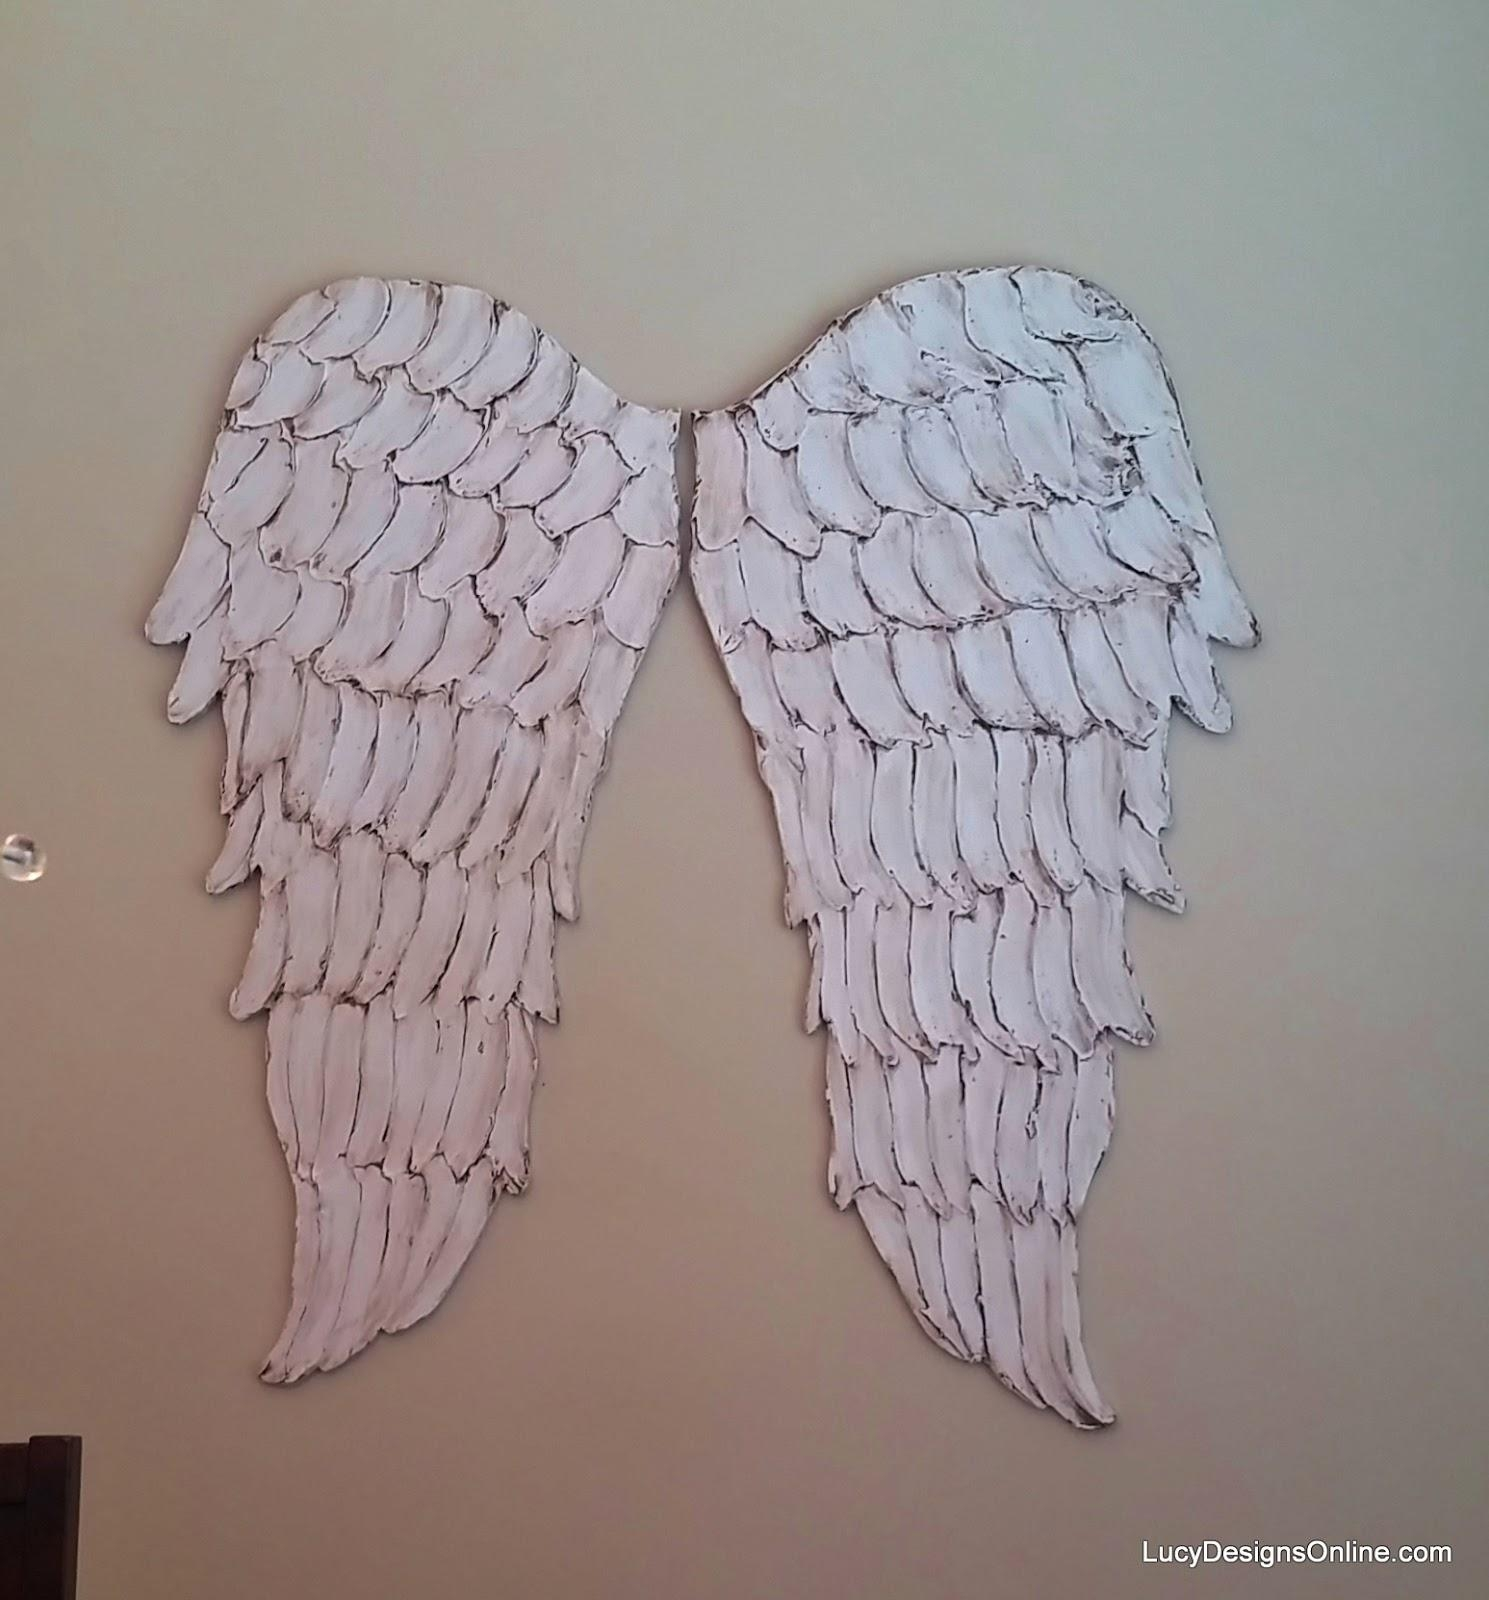 Wood Angel Wings Wall Art, Large Carved Look Wooden Angel Wings Regarding Angel Wings Wall Art (Image 20 of 20)